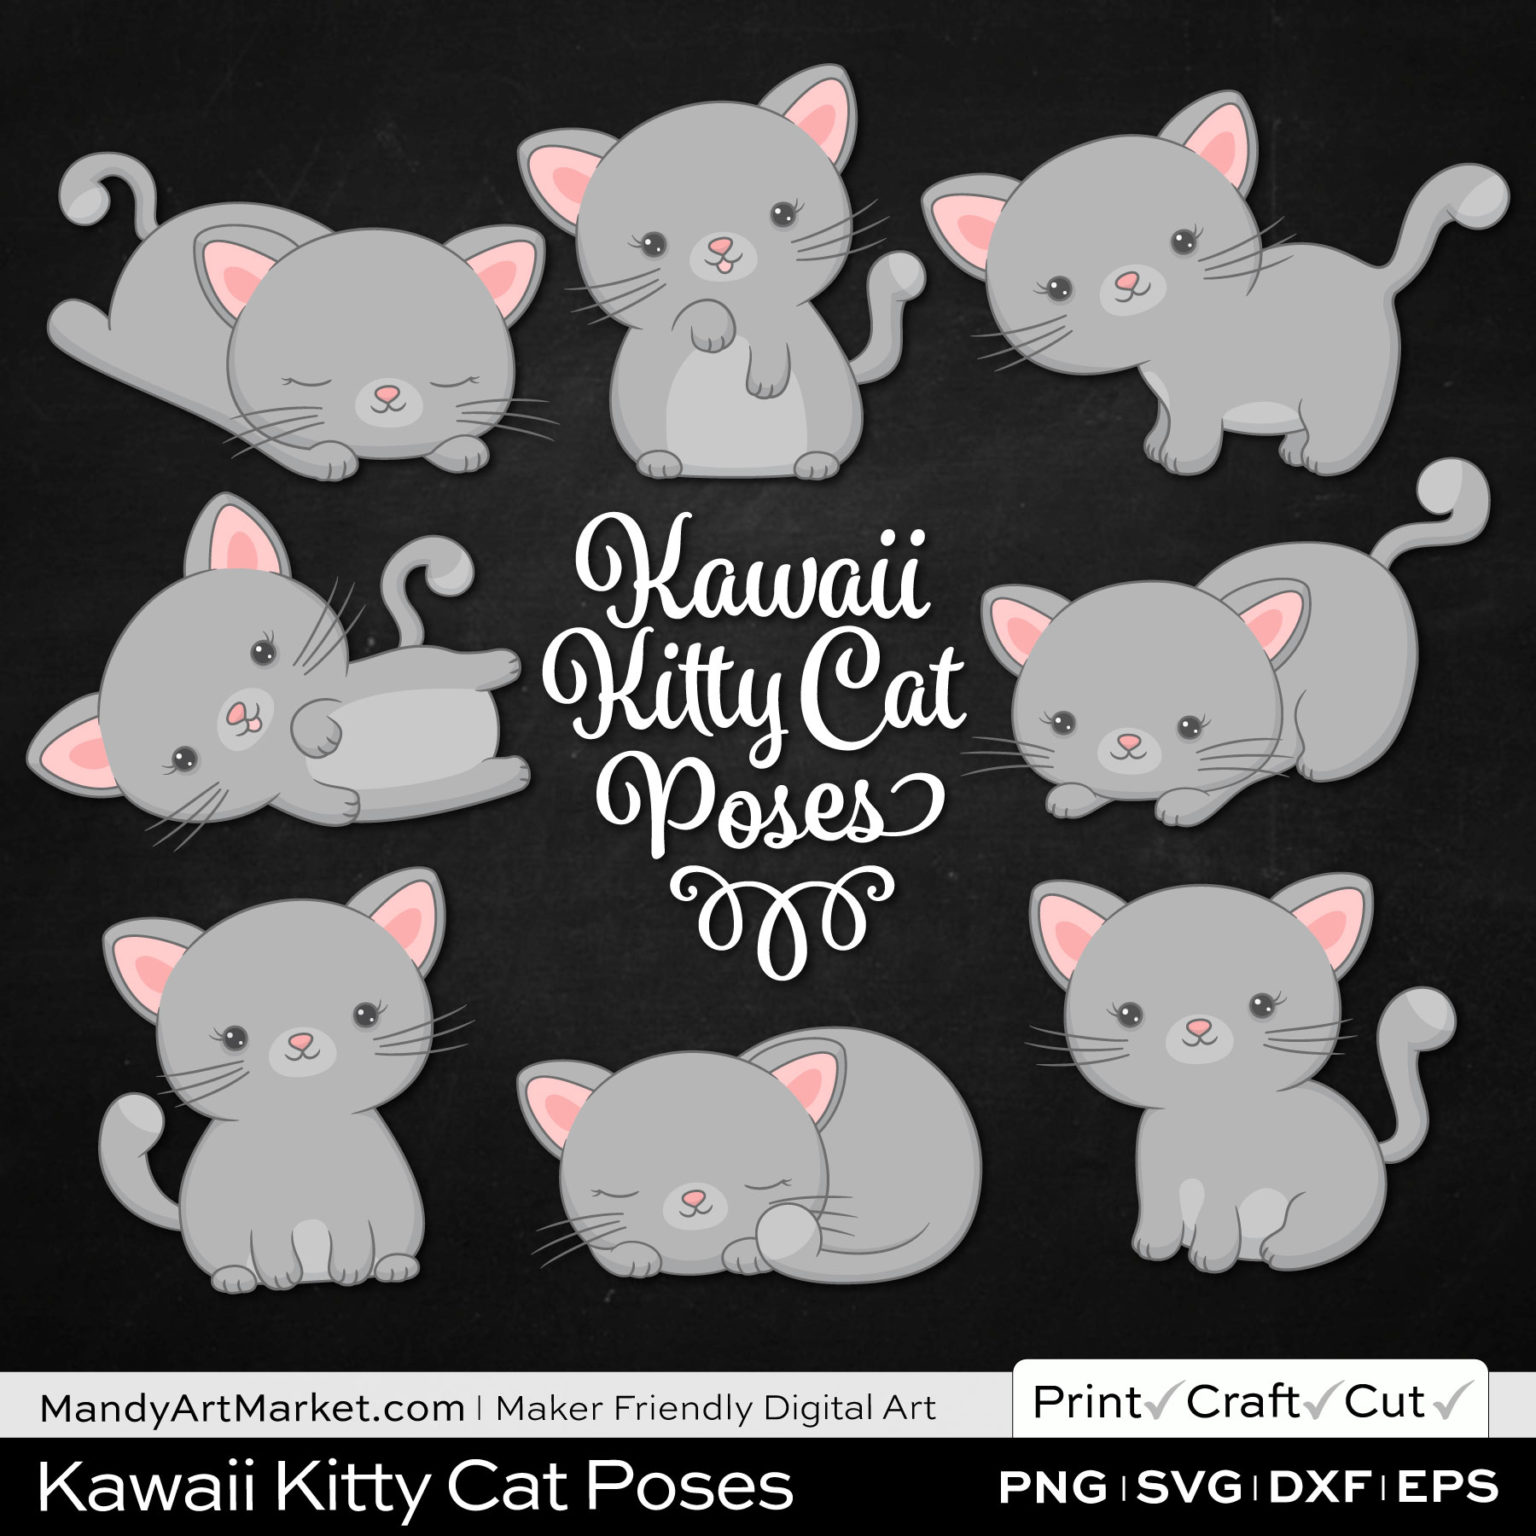 Silver Gray Kawaii Kitty Cat Poses Clipart on Black Background